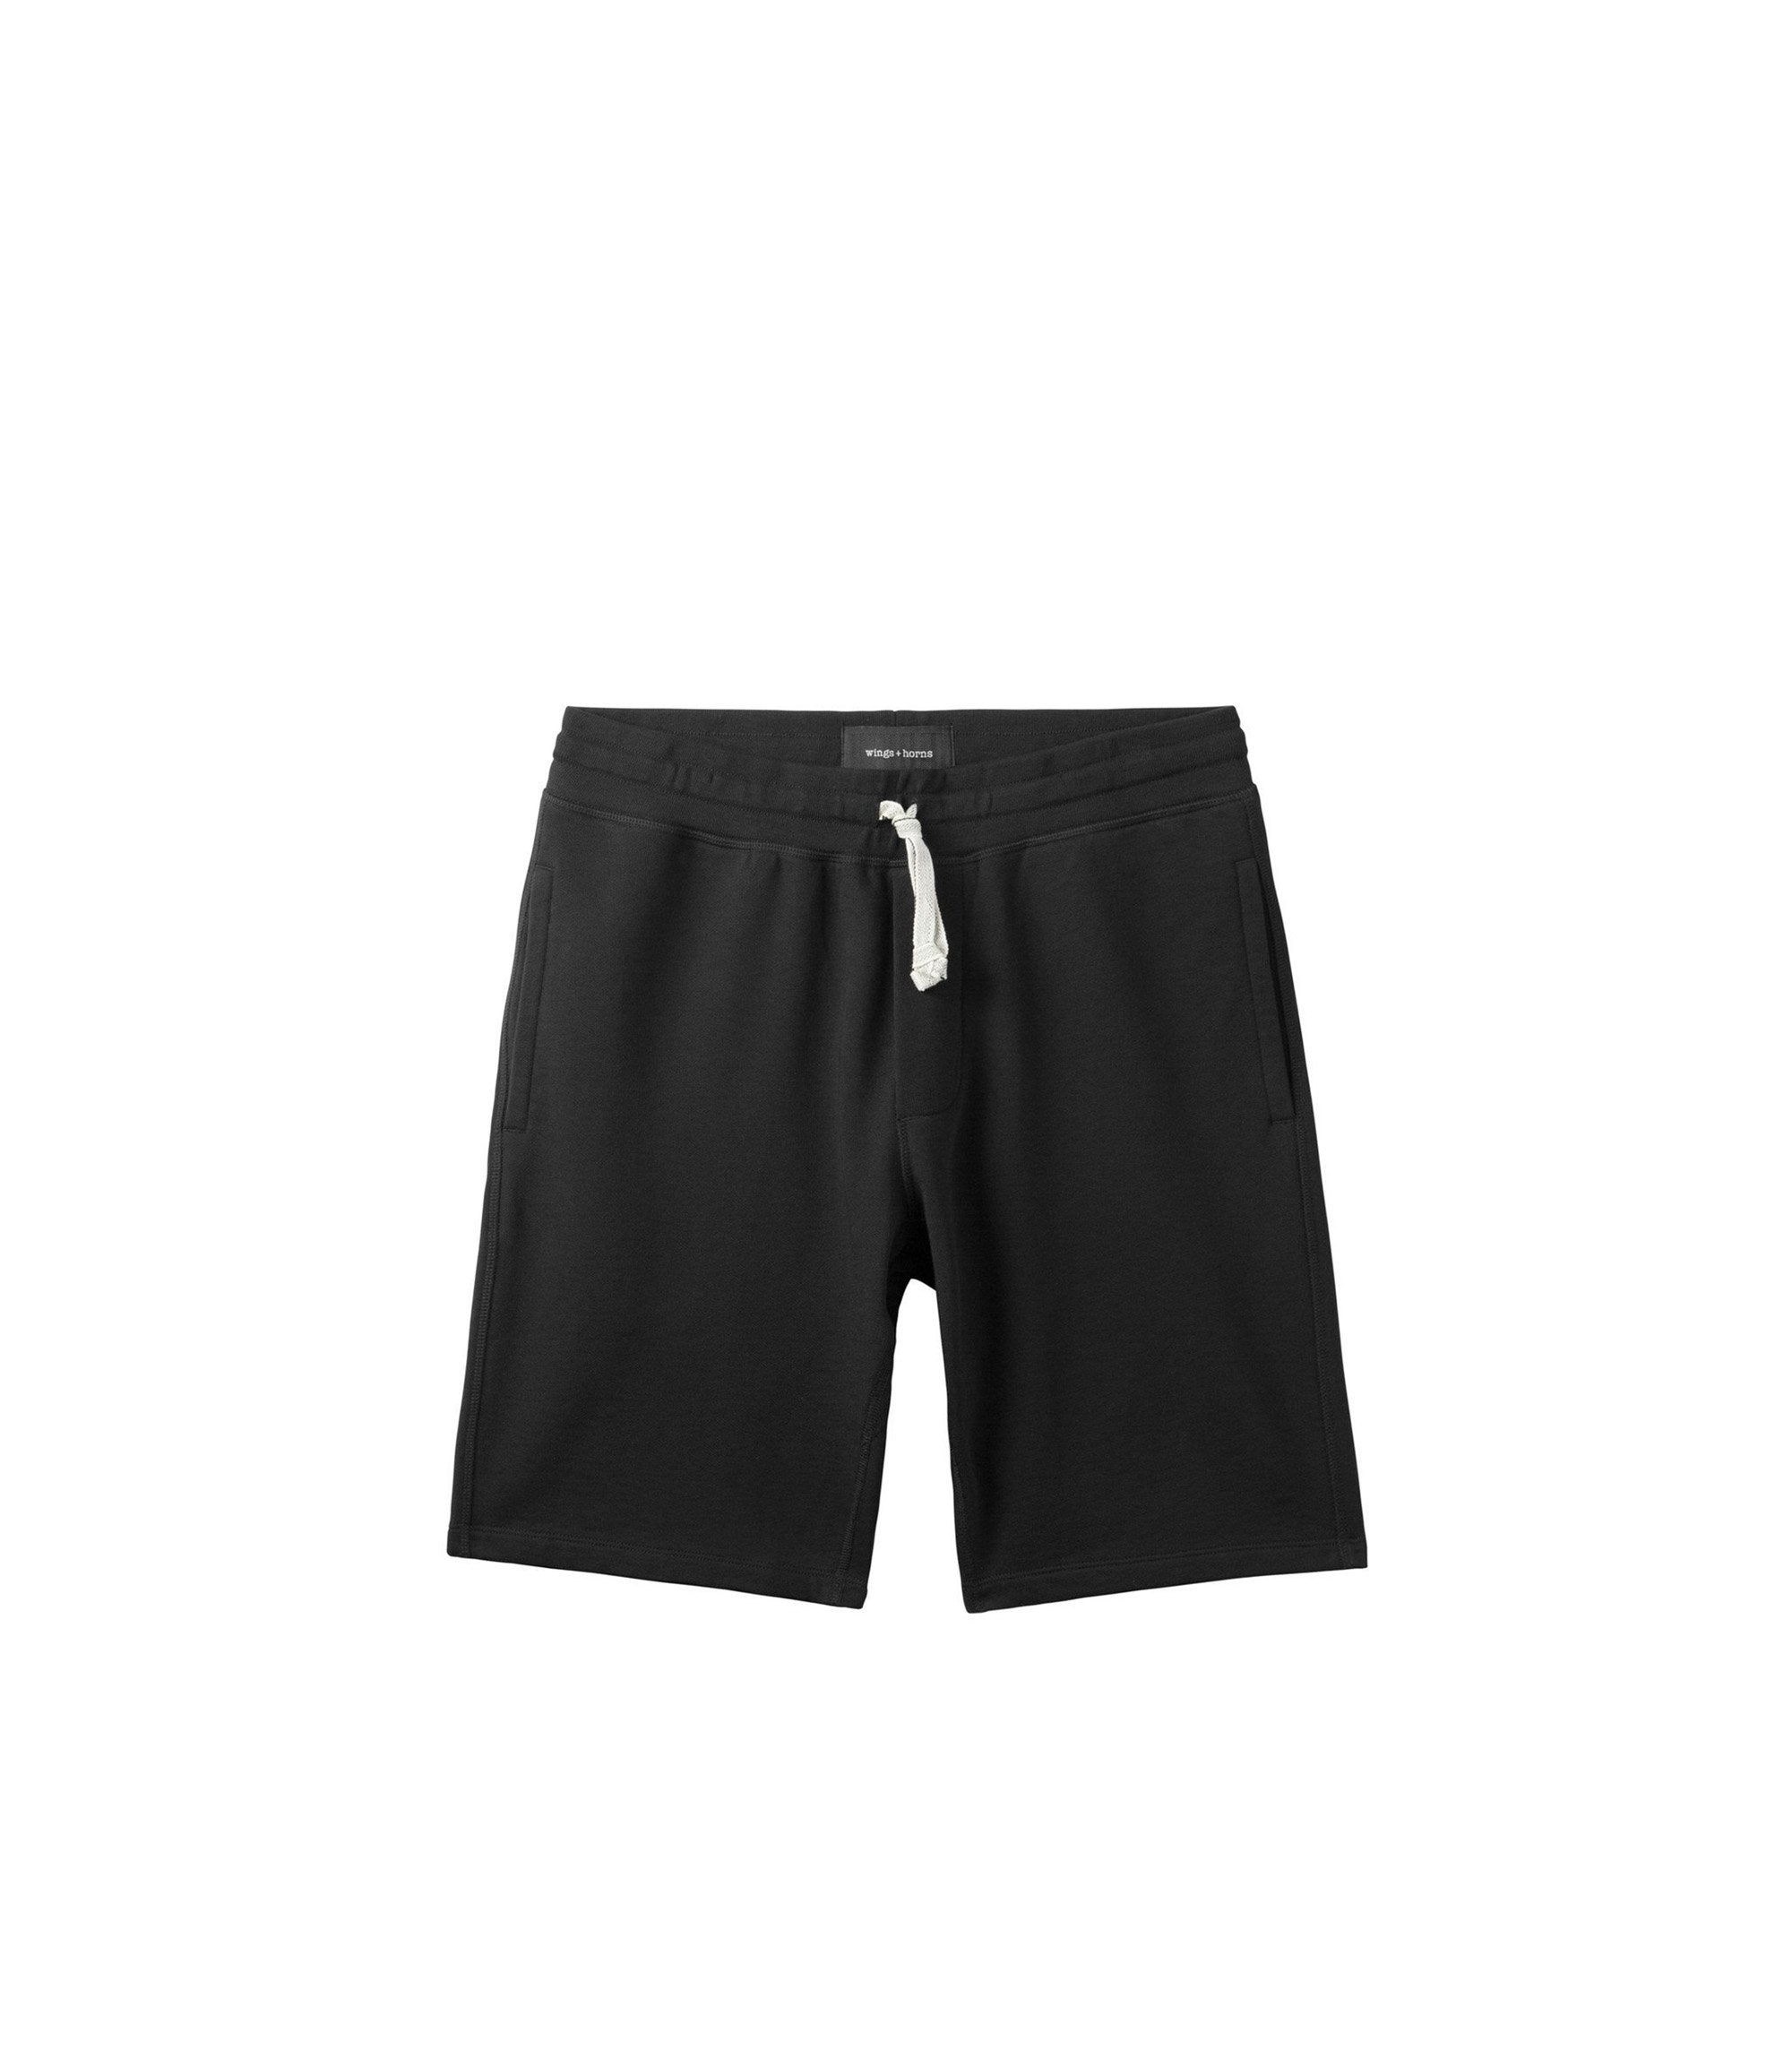 WINGS + HORNS M'S SHORTS BLACK S ORIGINAL SHORT